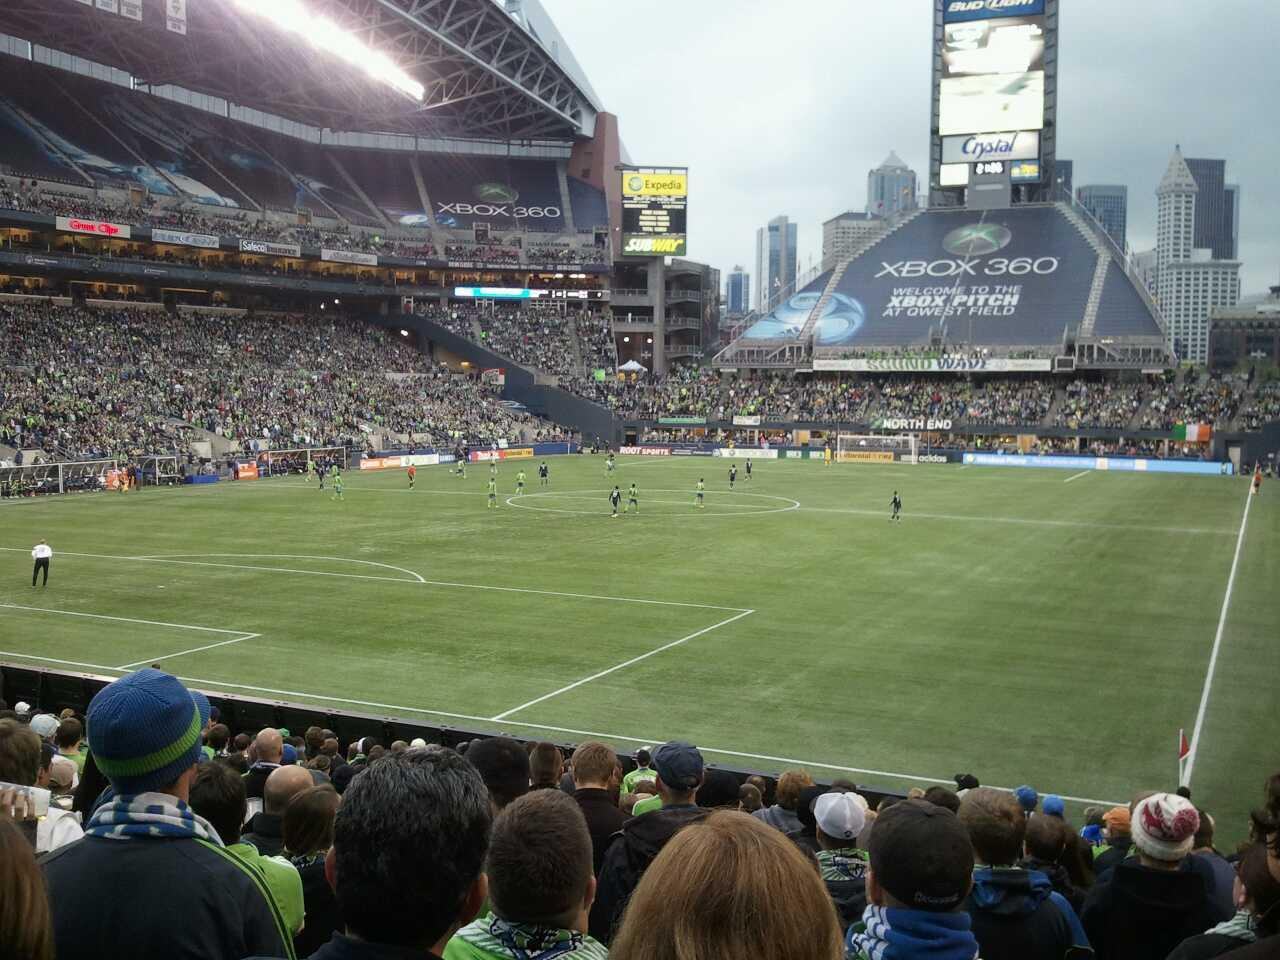 CenturyLink Field Section 118 Row V Seat 12